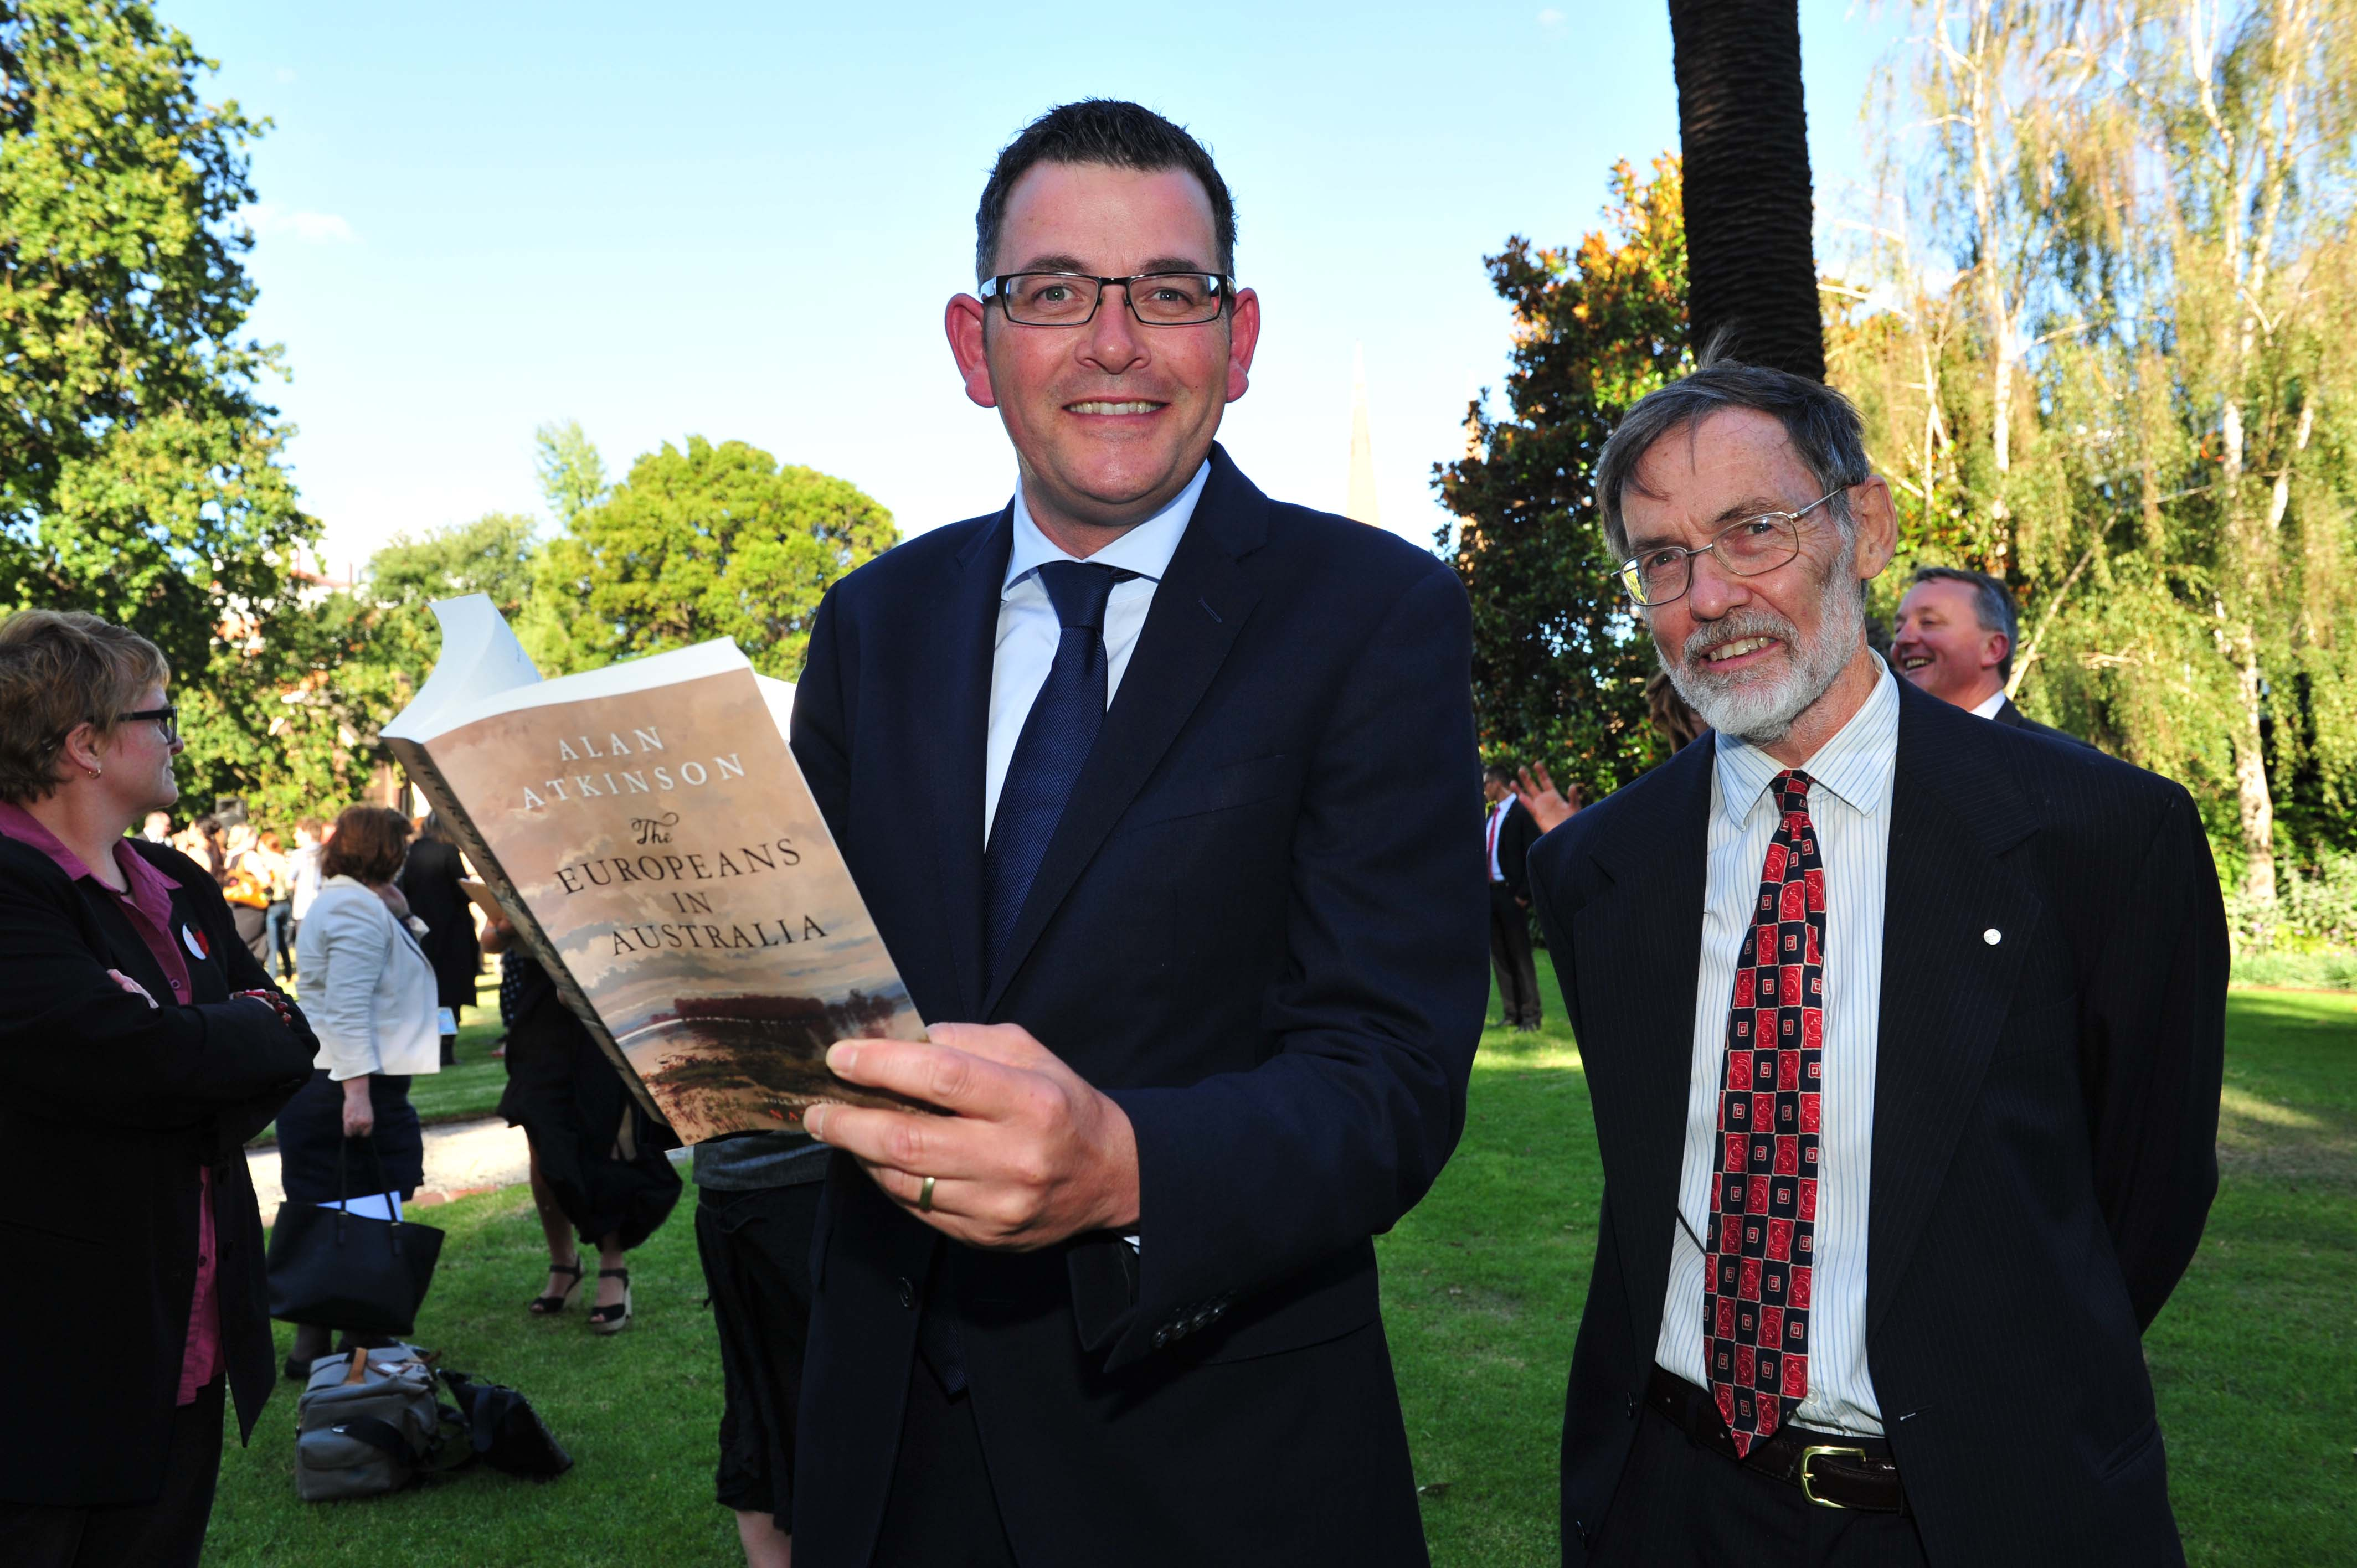 Premier Daniel Andrews with Alan Atkinson, winner of the Victorian Prize for Literature.